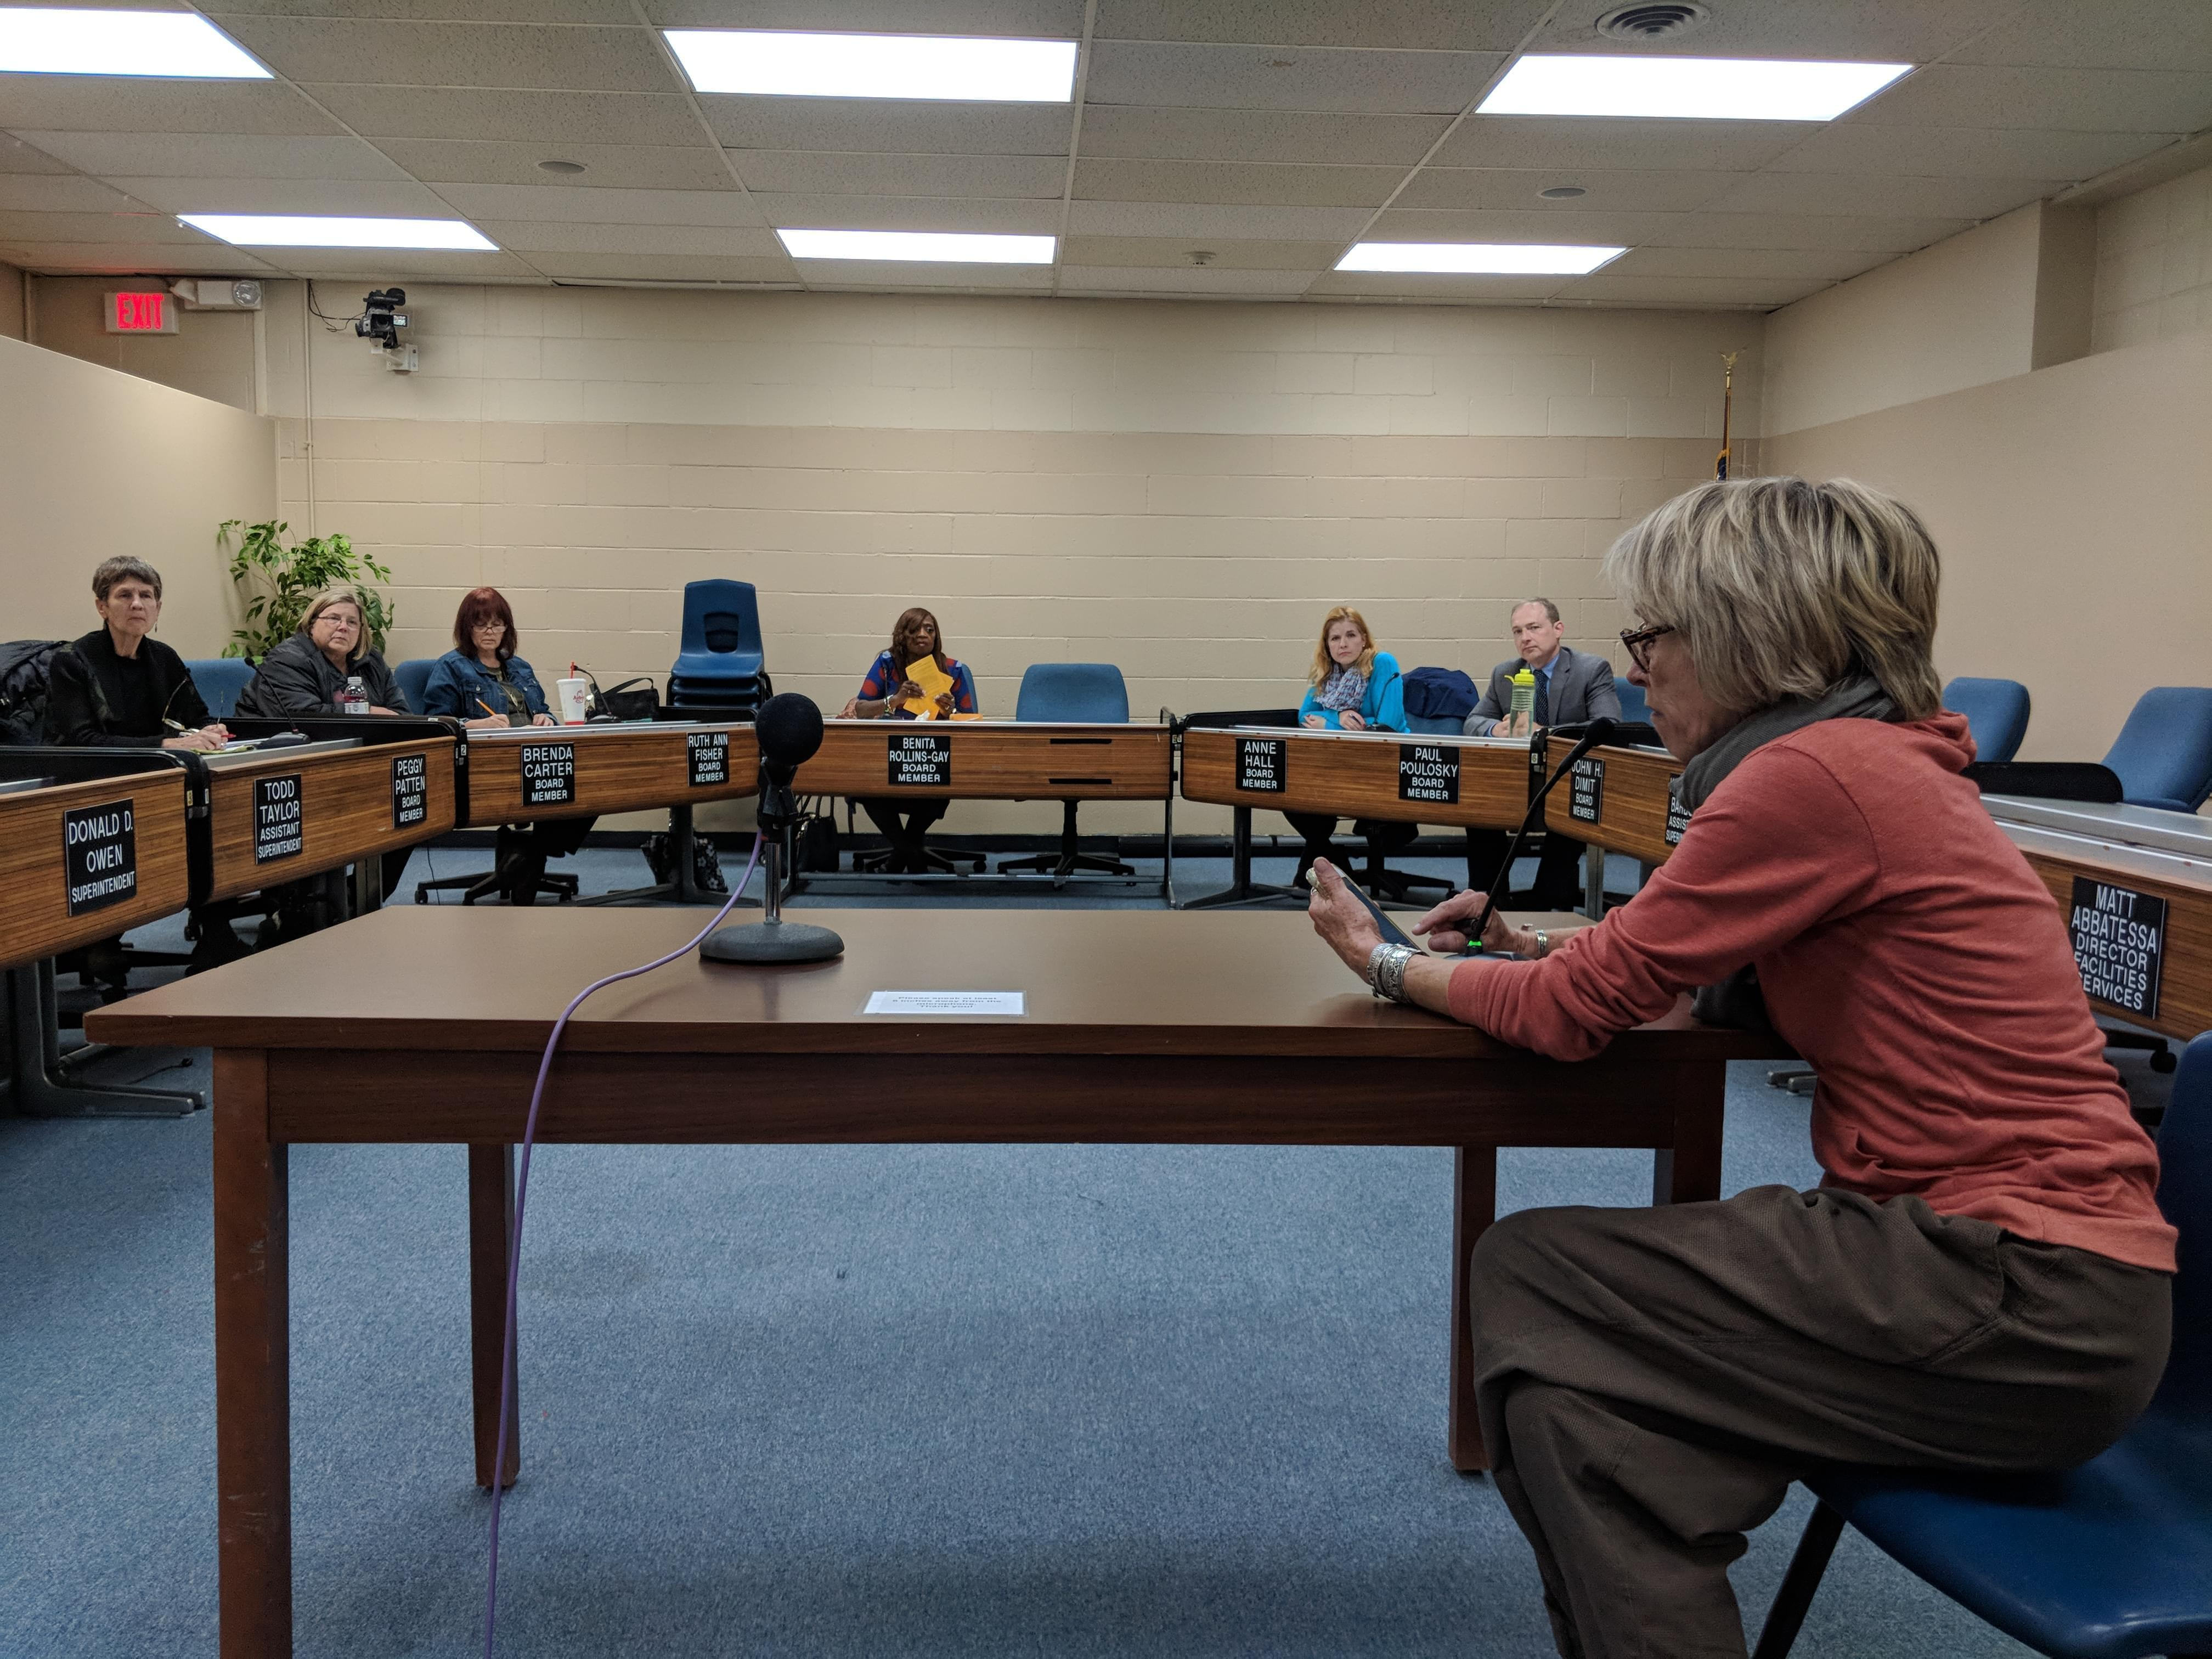 Shelley Washburne Masar speaks at an Urbana District 116 Board of Education meeting on Oct. 28, 2018.